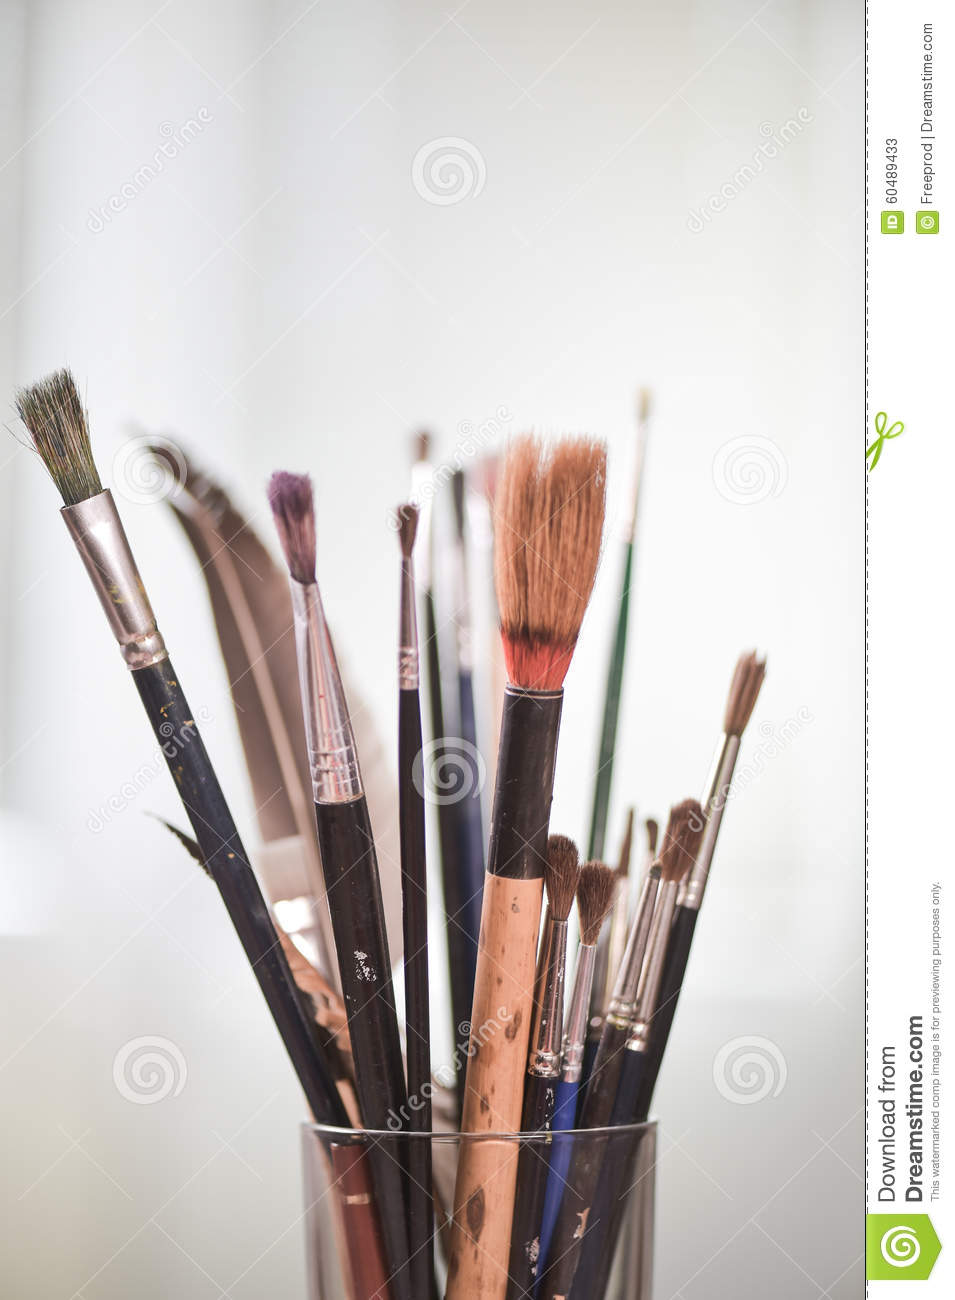 paint brushes in the pot stock illustration image 60489433. Black Bedroom Furniture Sets. Home Design Ideas